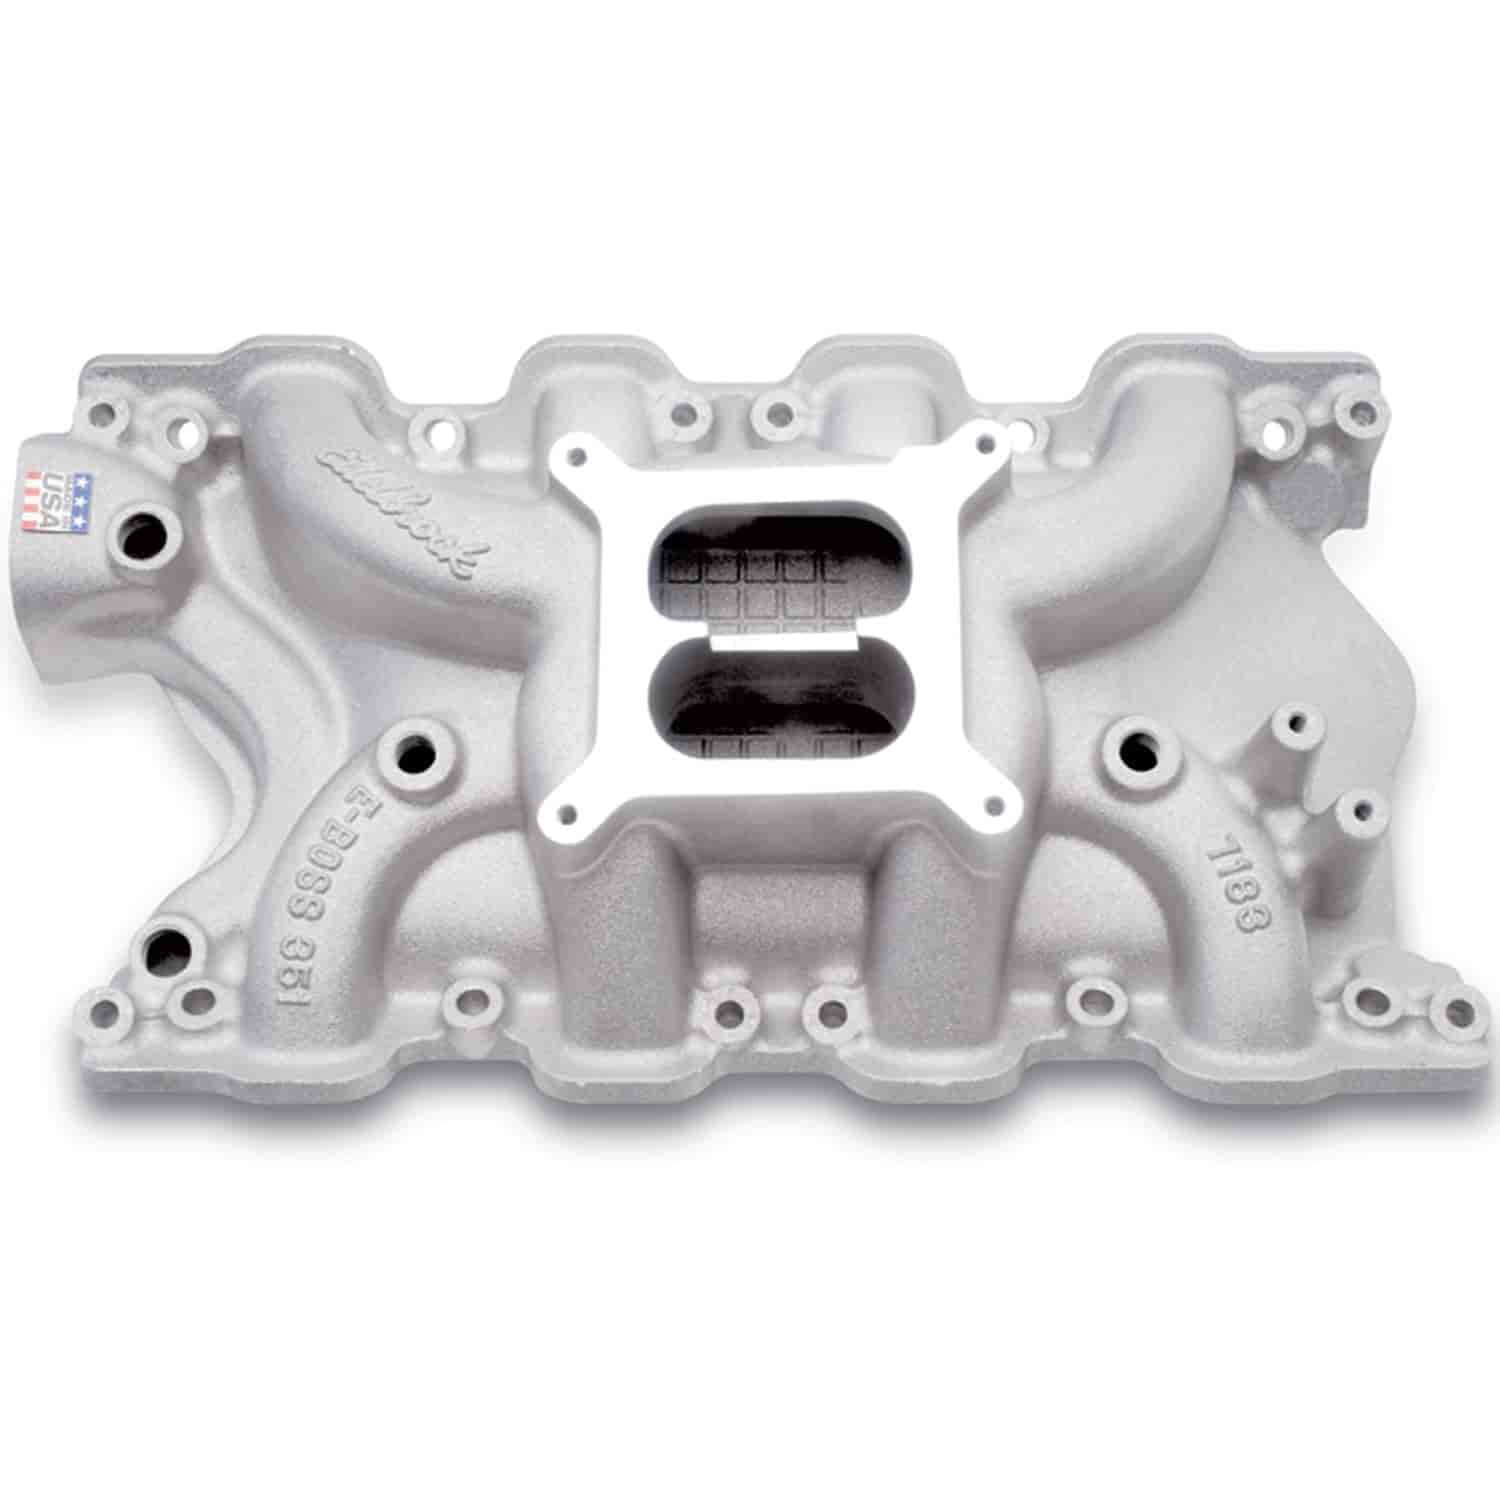 Edelbrock 7183 - Edelbrock Performer RPM Manifolds & Kits for Ford